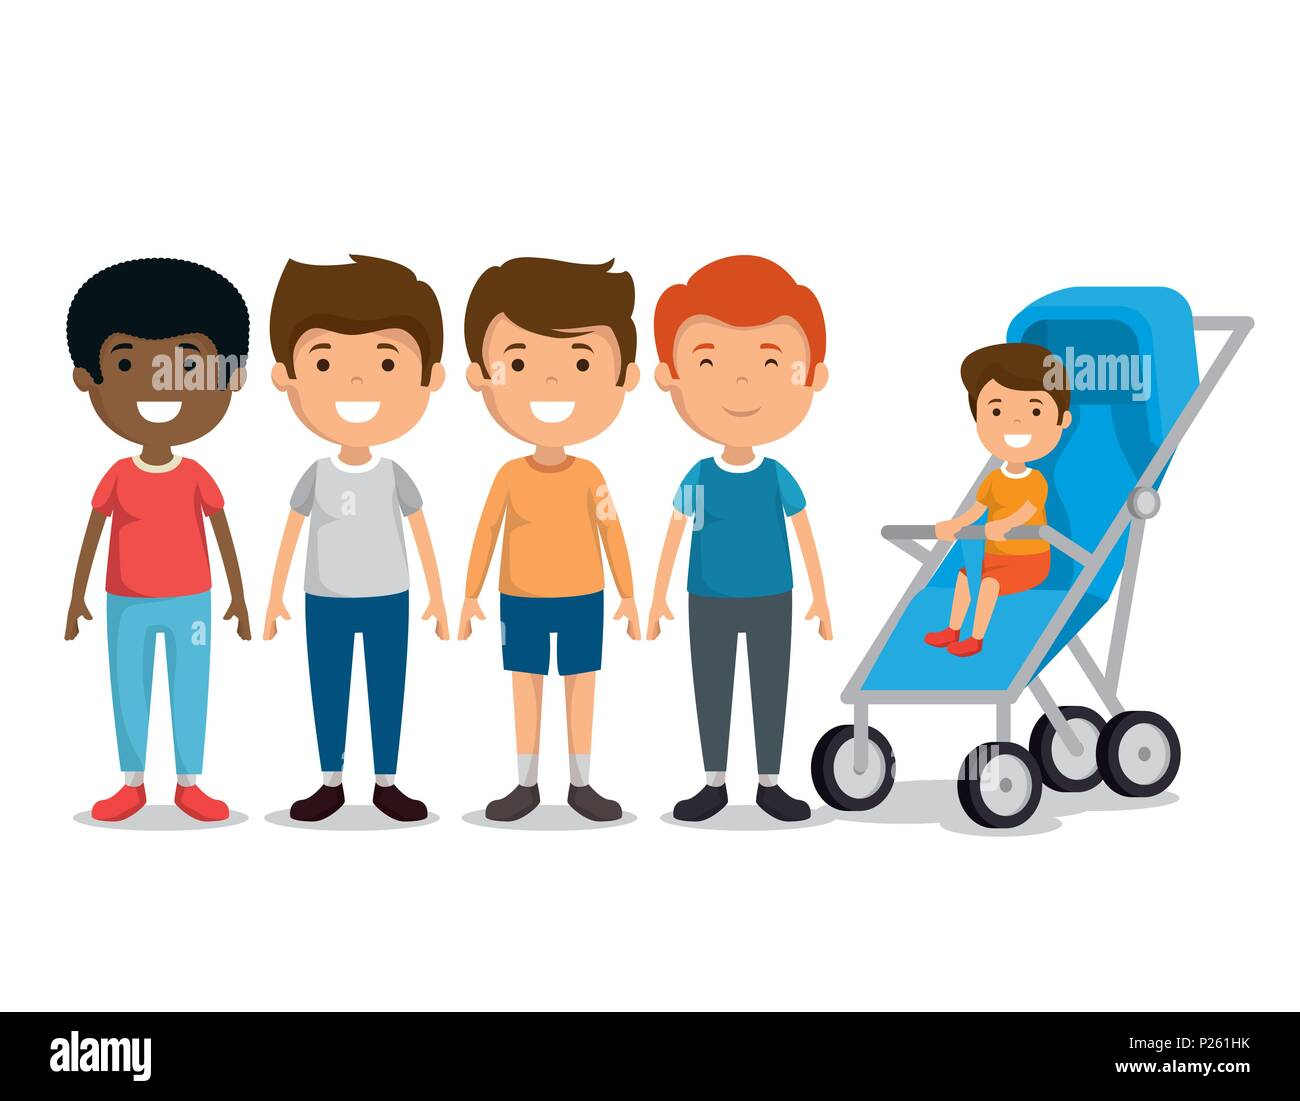 group of boys friends characters - Stock Image